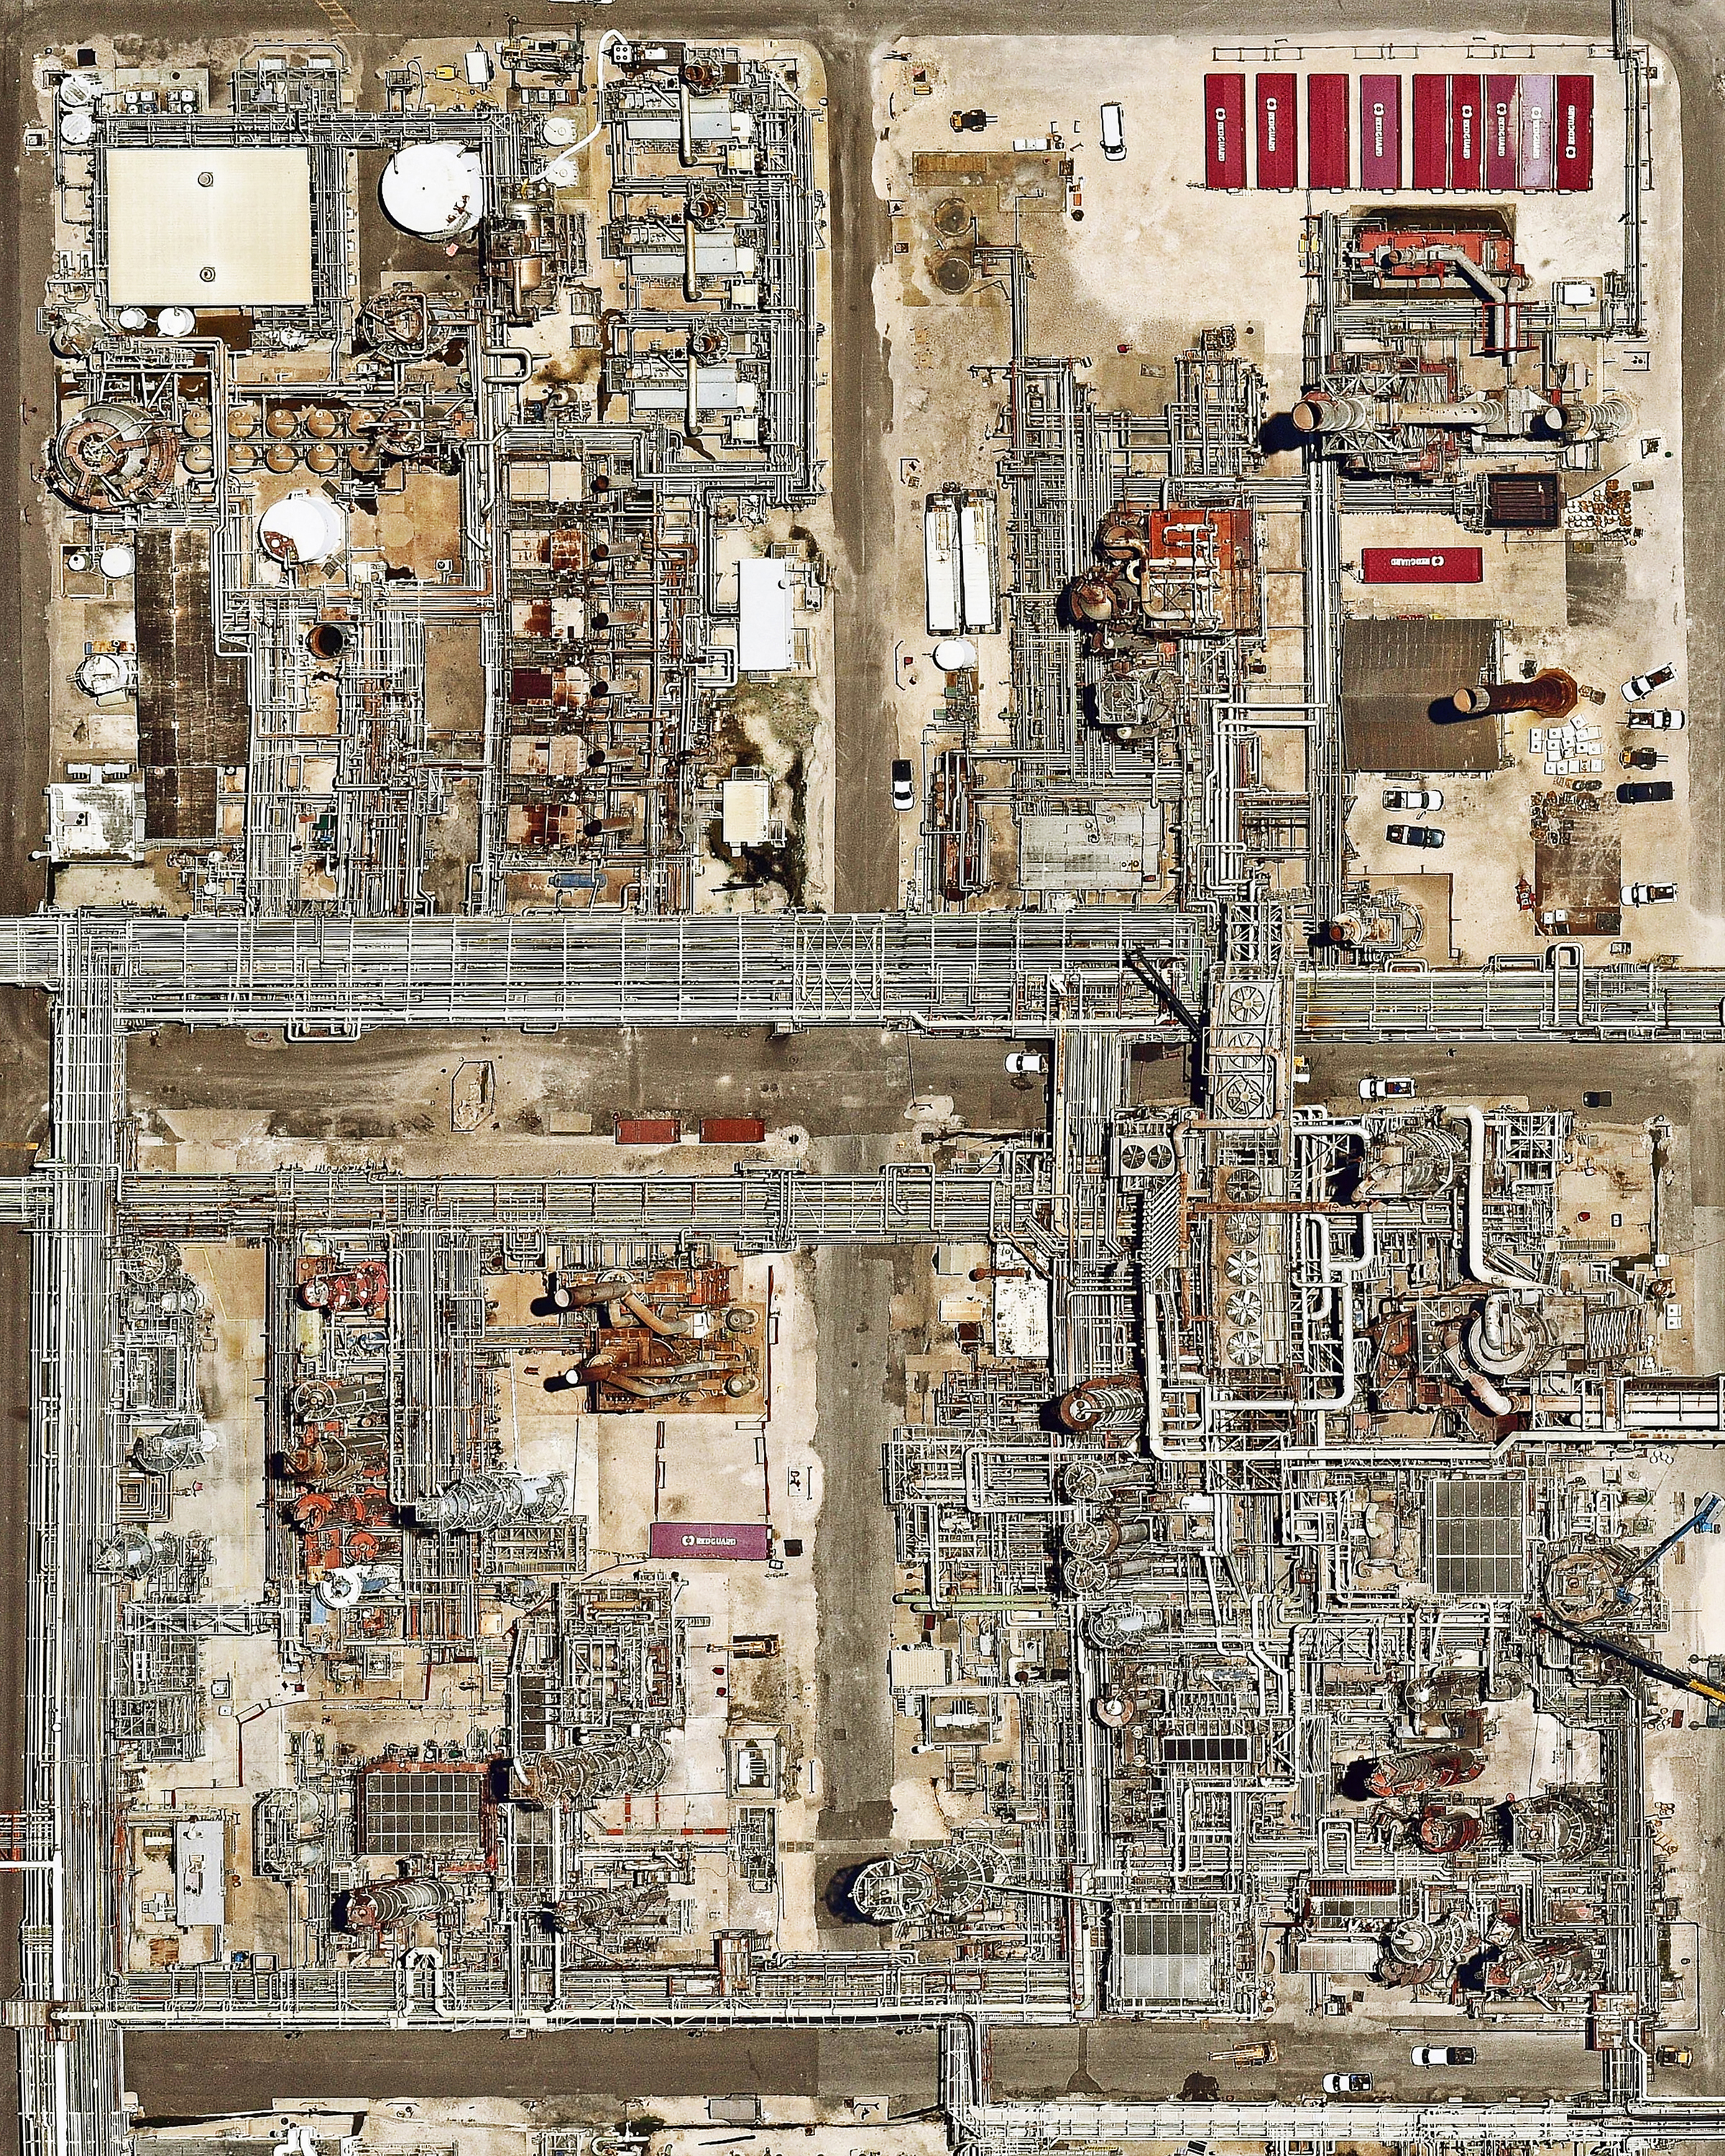 """Check out this Overview, which shows a maze of pipes and other equipment at an oil refinery in Corpus Christi, Texas. Due to its position on the Port of Corpus Christi — the fifth largest U.S. port and deepest inshore port on the Gulf of Mexico — much of the city's economy is driven by the oil and petrochemicals industry. An average of 400,000 barrels of crude oil per day were exported from this port during 2018.  27°50'00.4""""N, 97°31'29.1""""W  Source imagery: Nearmap"""